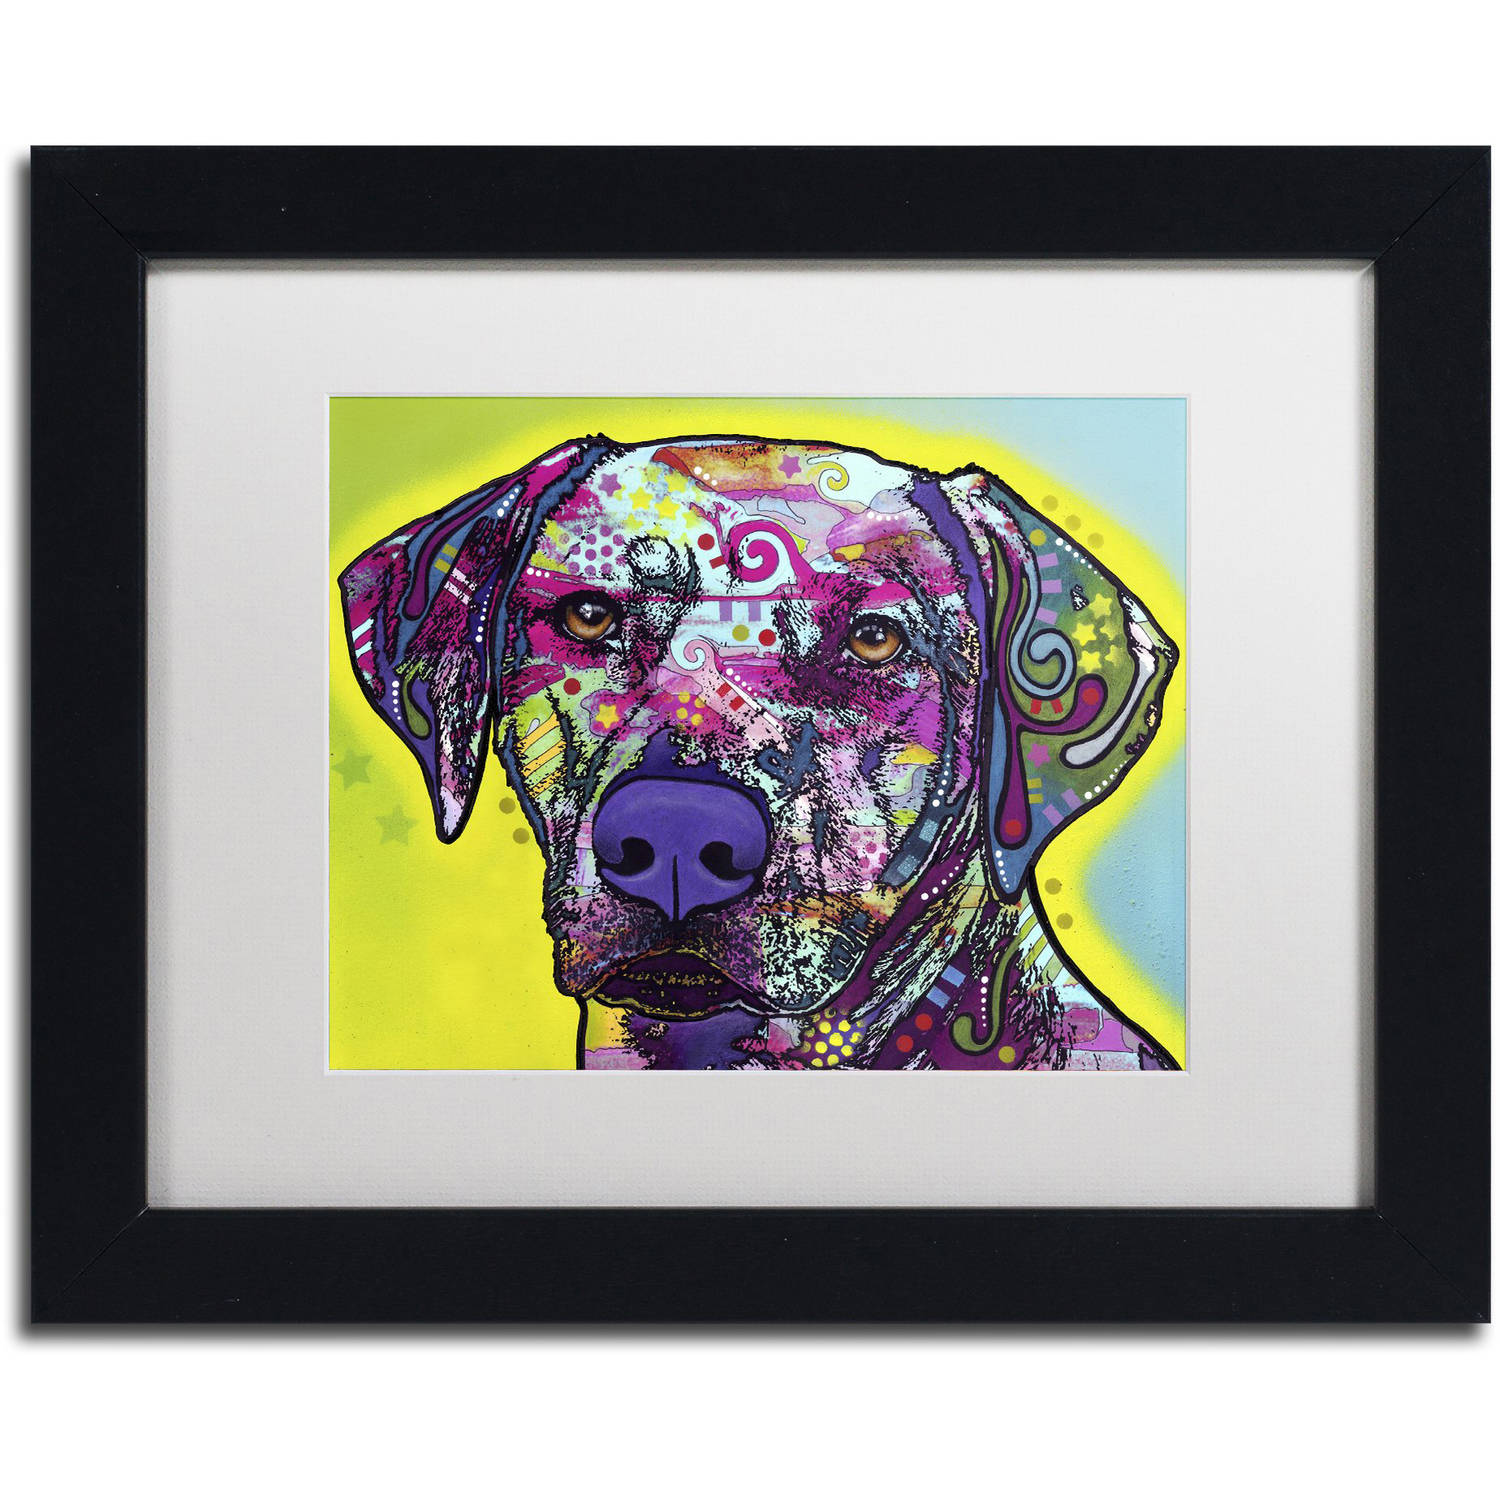 "Trademark Fine Art ""Rhodesian Ridgeback"" Canvas Art by Dean Russo, White Matte, Black Frame"